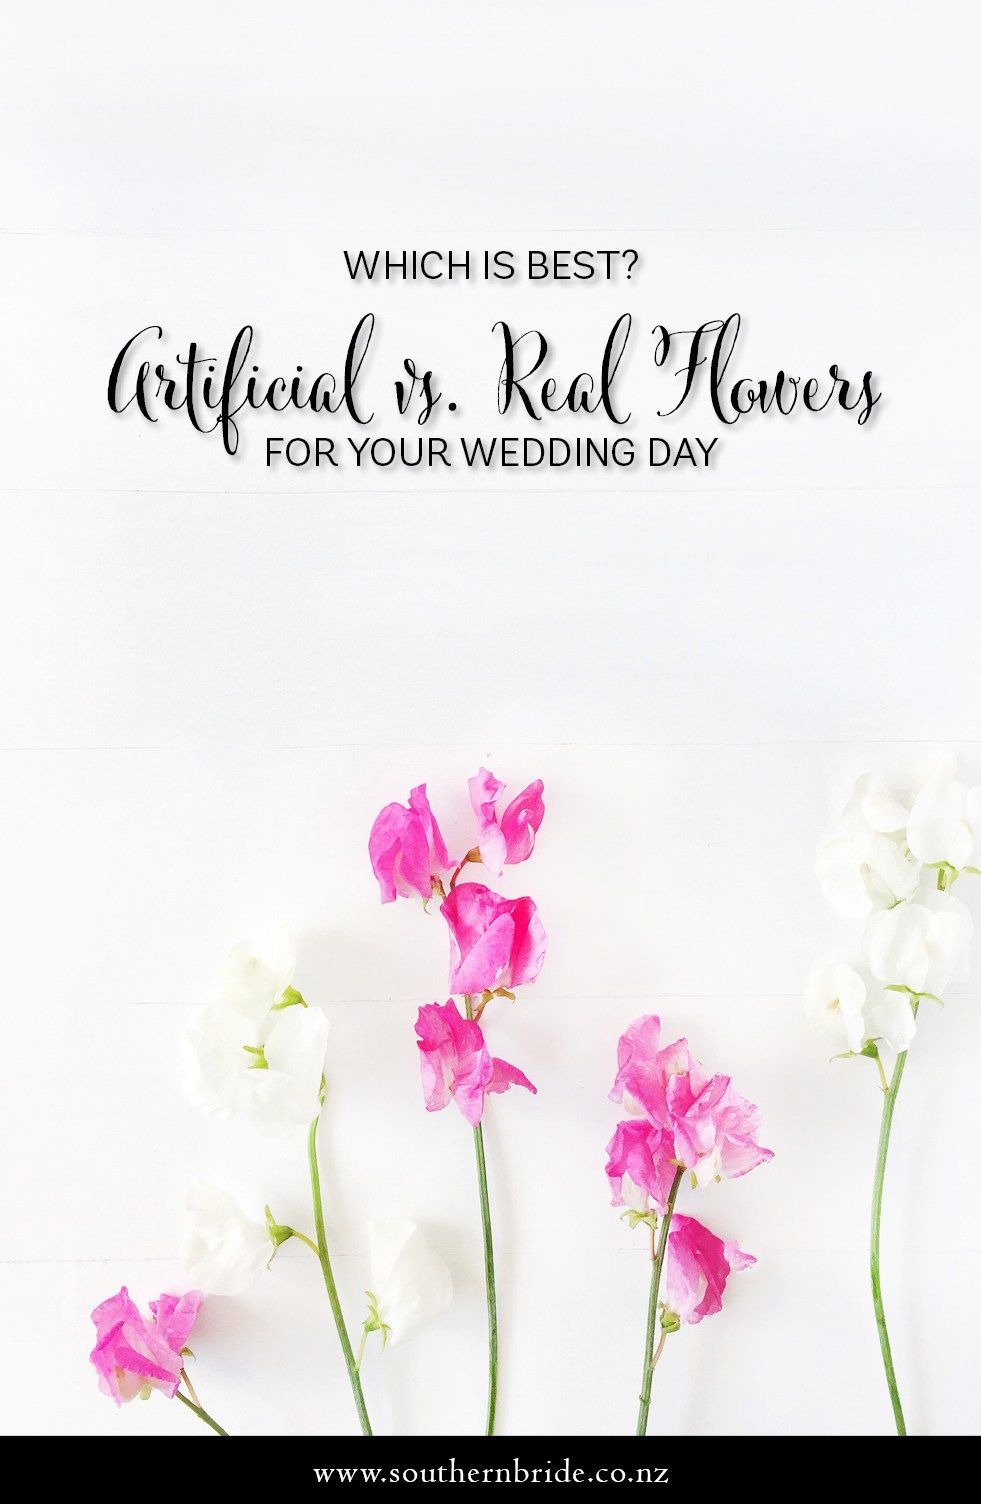 Artificial Vs Real Wedding Flowers Which Is Best Pinterest